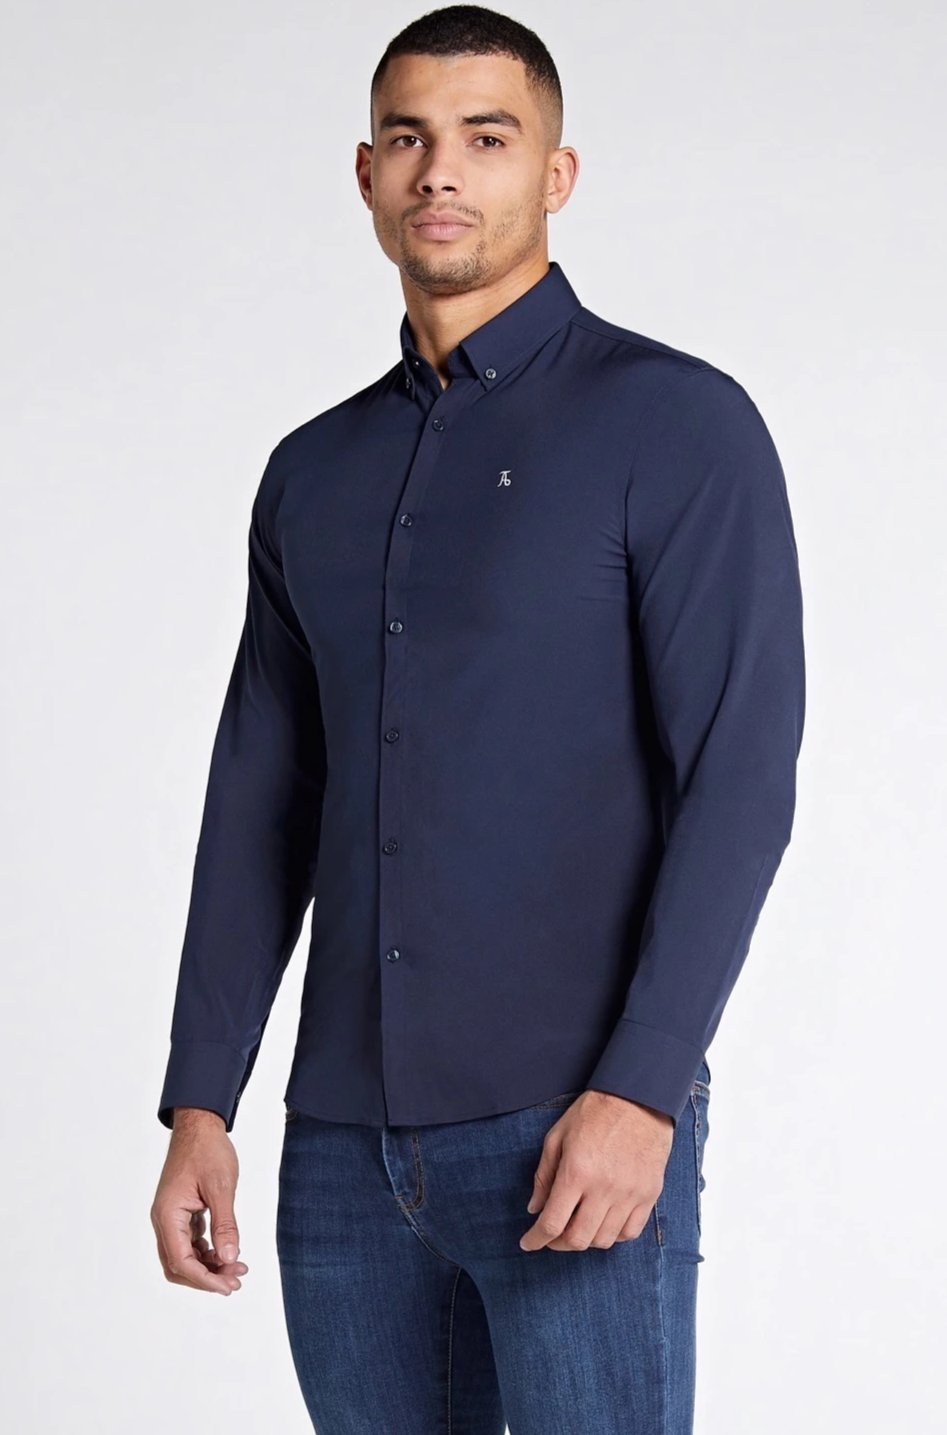 Elite Signature Shirt in Navy